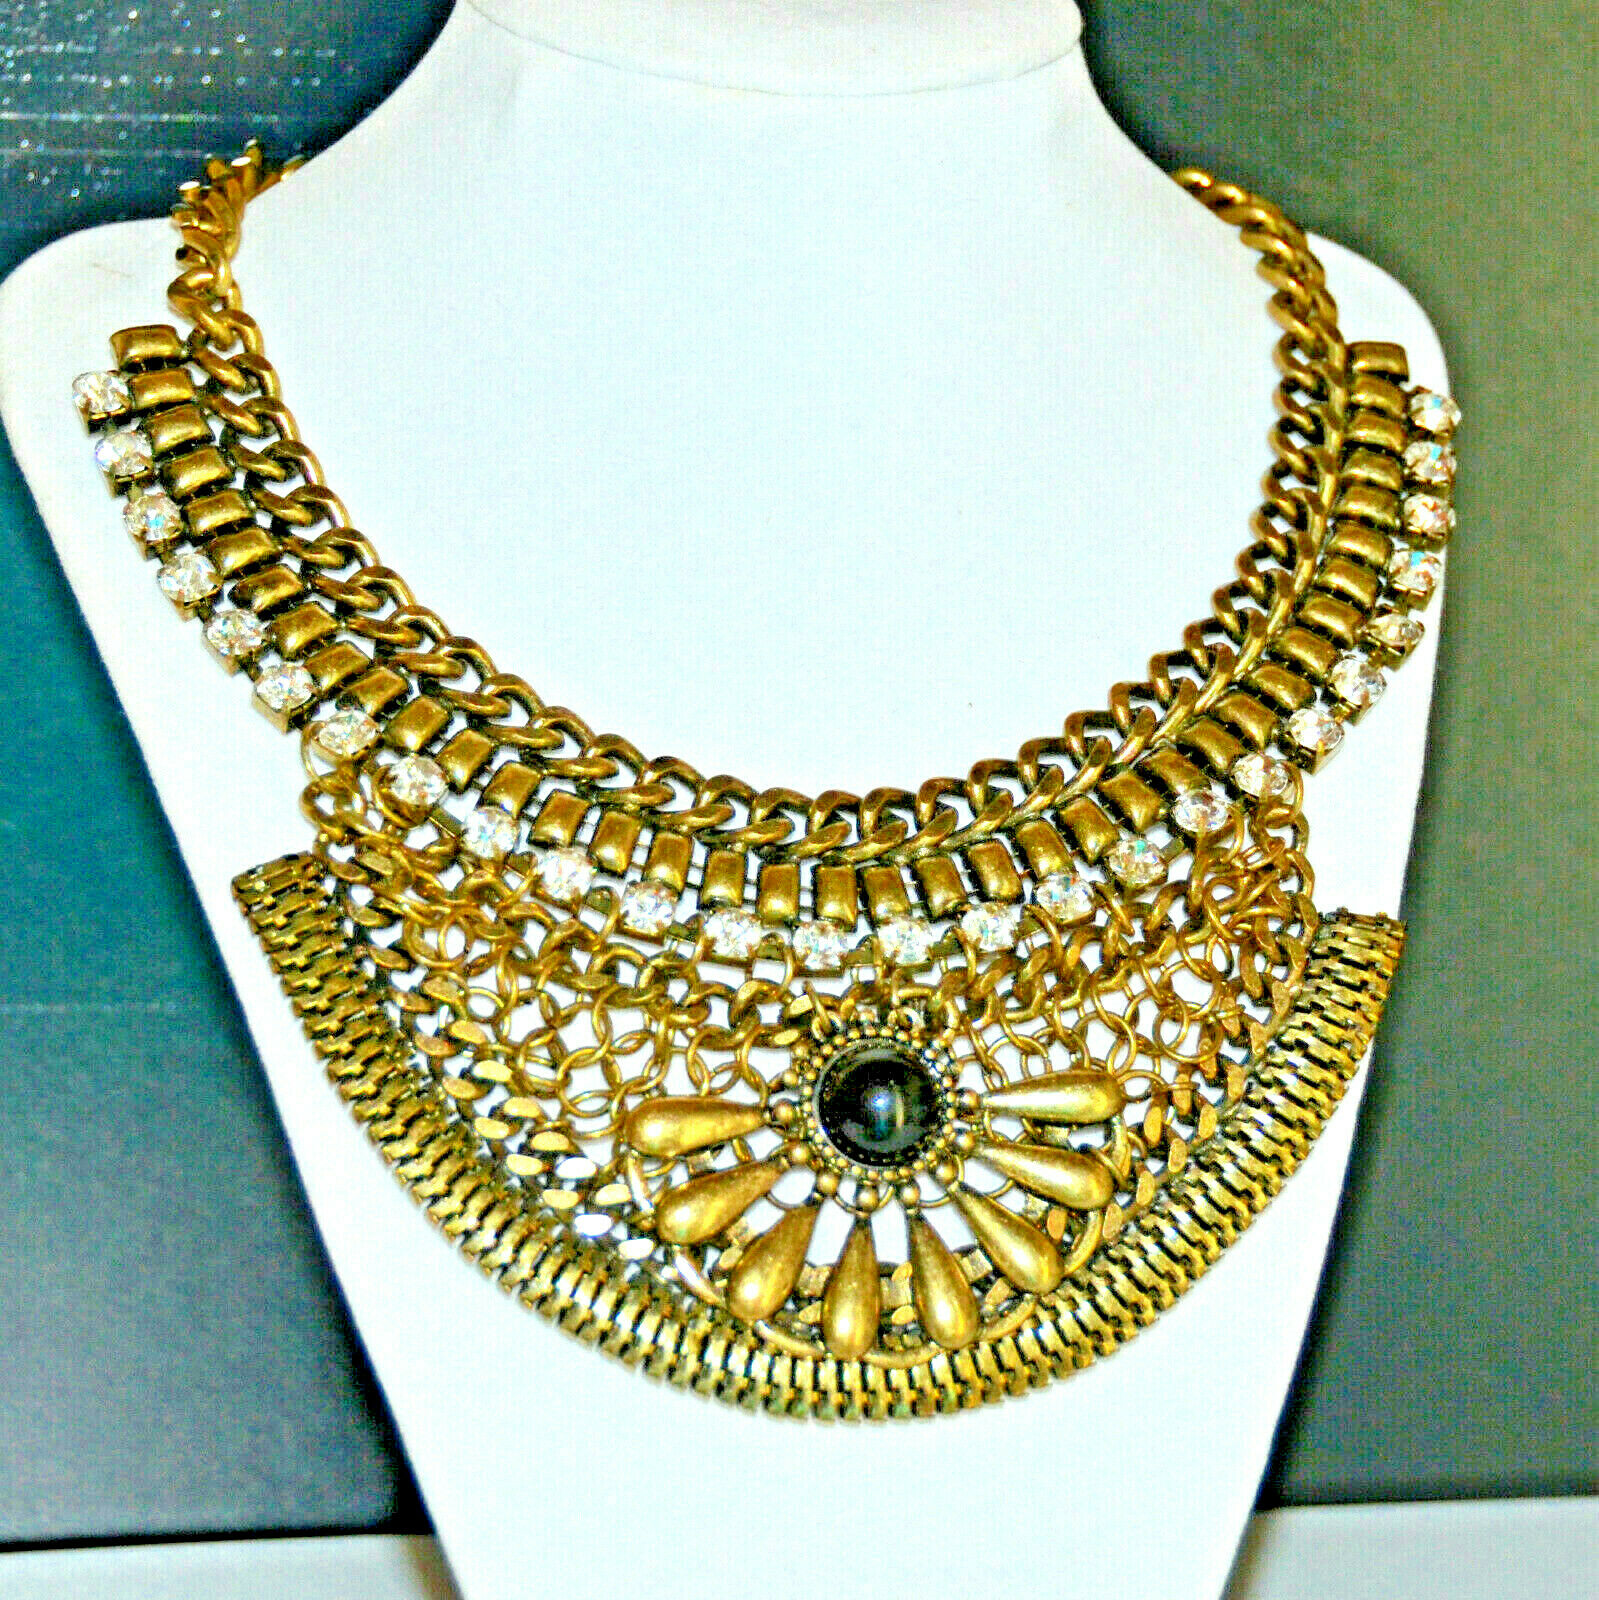 Vintage Retro Animal Print Dangle Beaded Necklace On Gold Tone Chain*